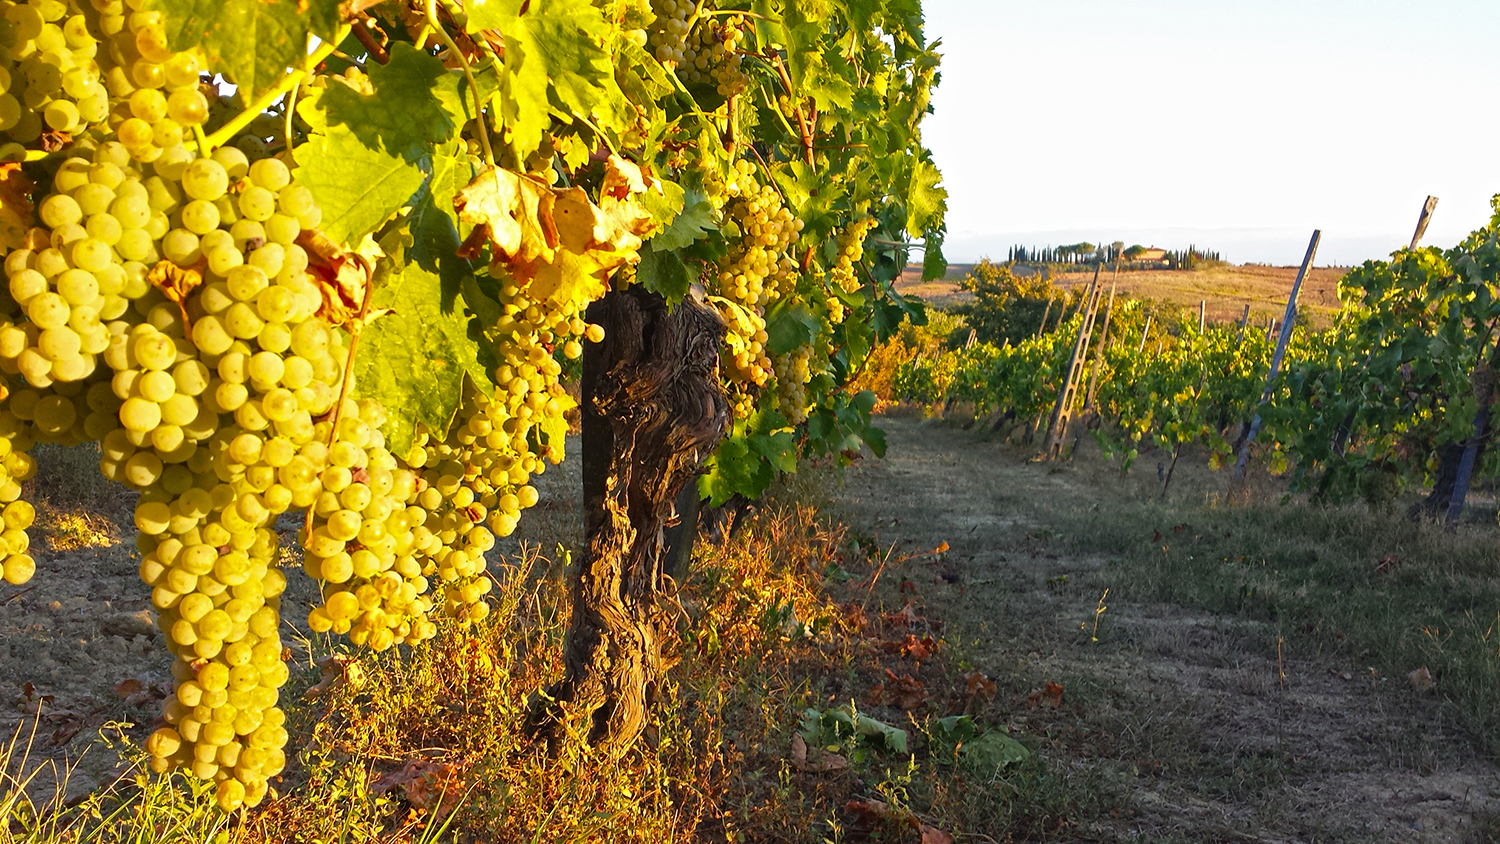 Agriturismo-grapes-wine-italy